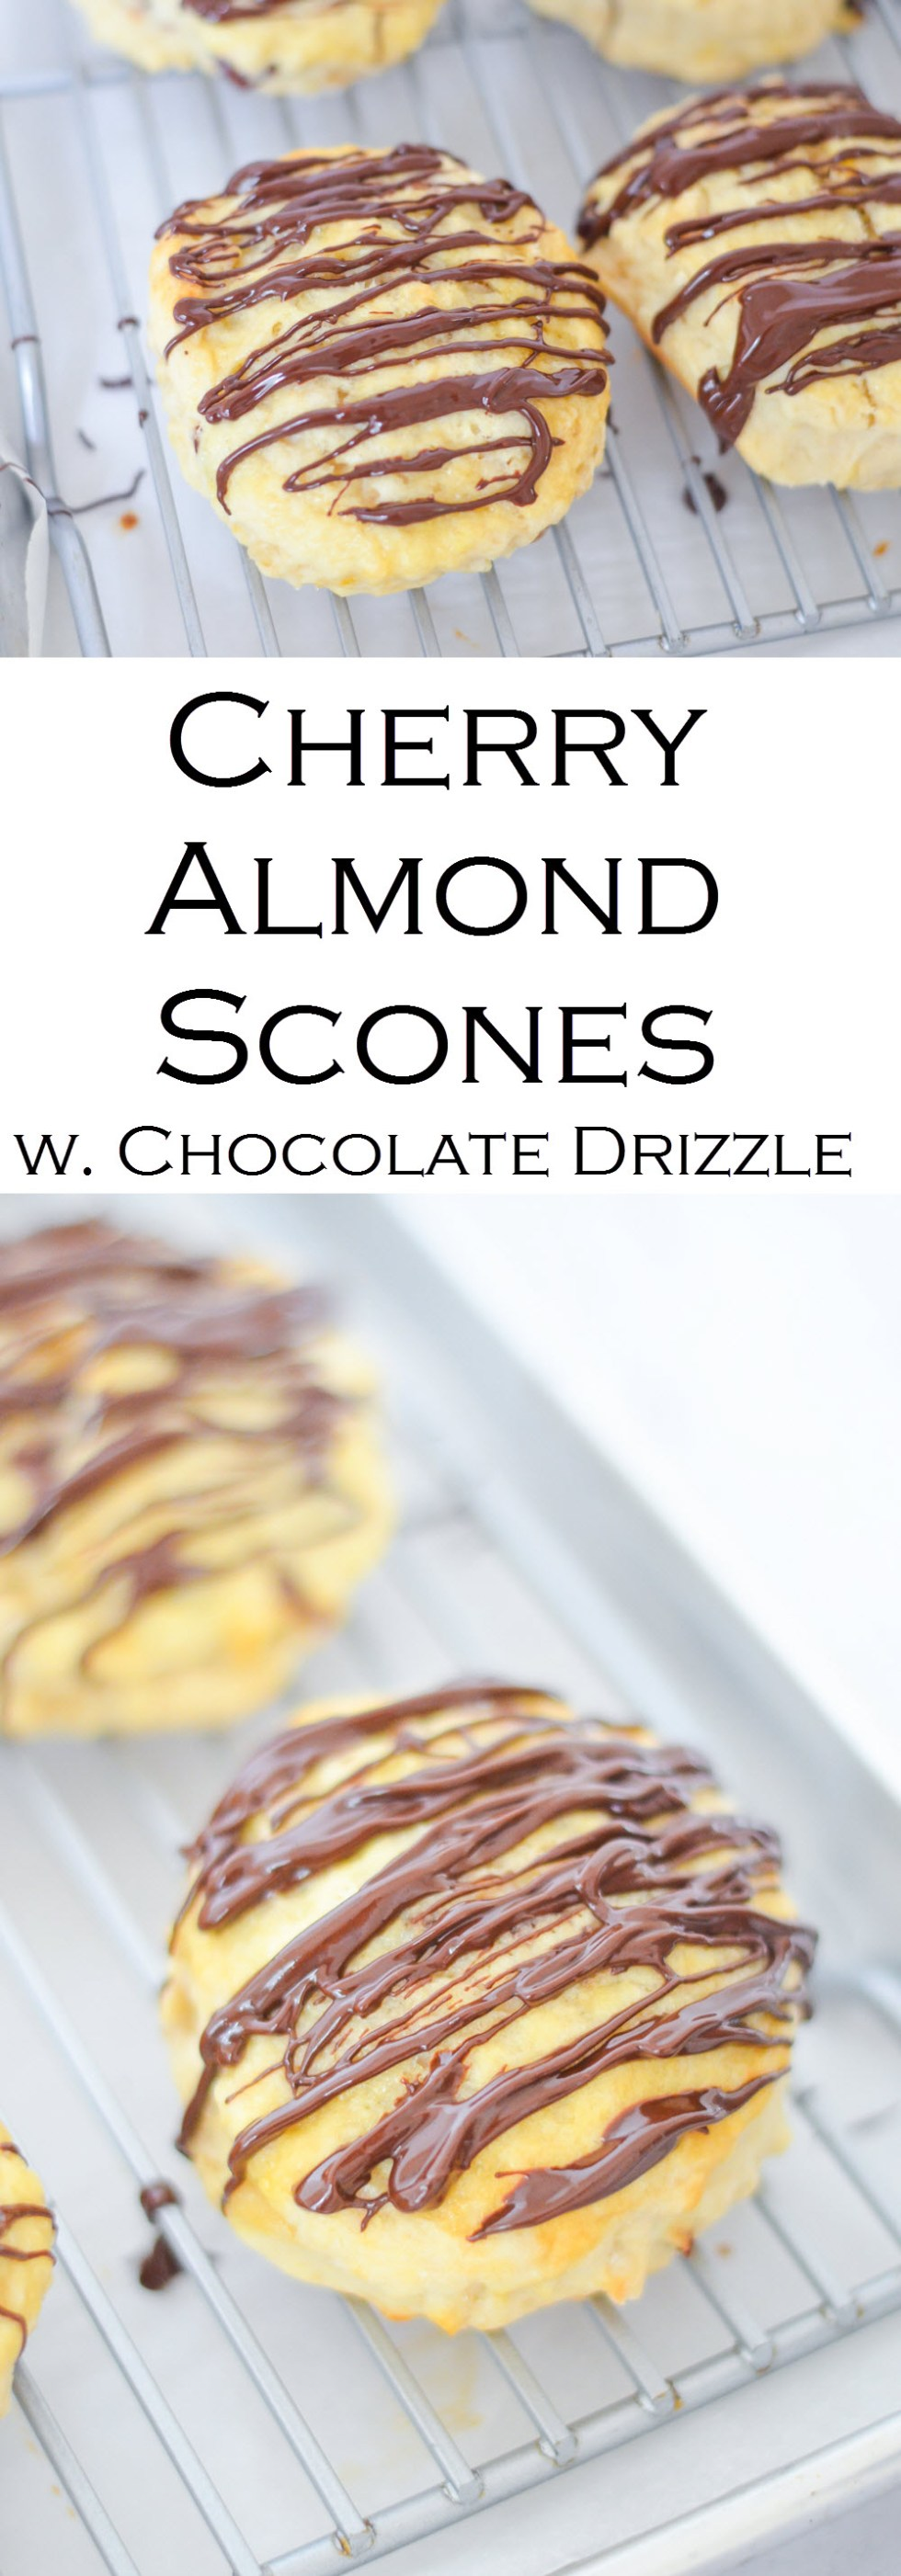 Dahlia Bakery Cherry Almond Scones w. Rich Chocolate Drizzle. #recipeblog #breakfast #brunch #scones #lmrecipes